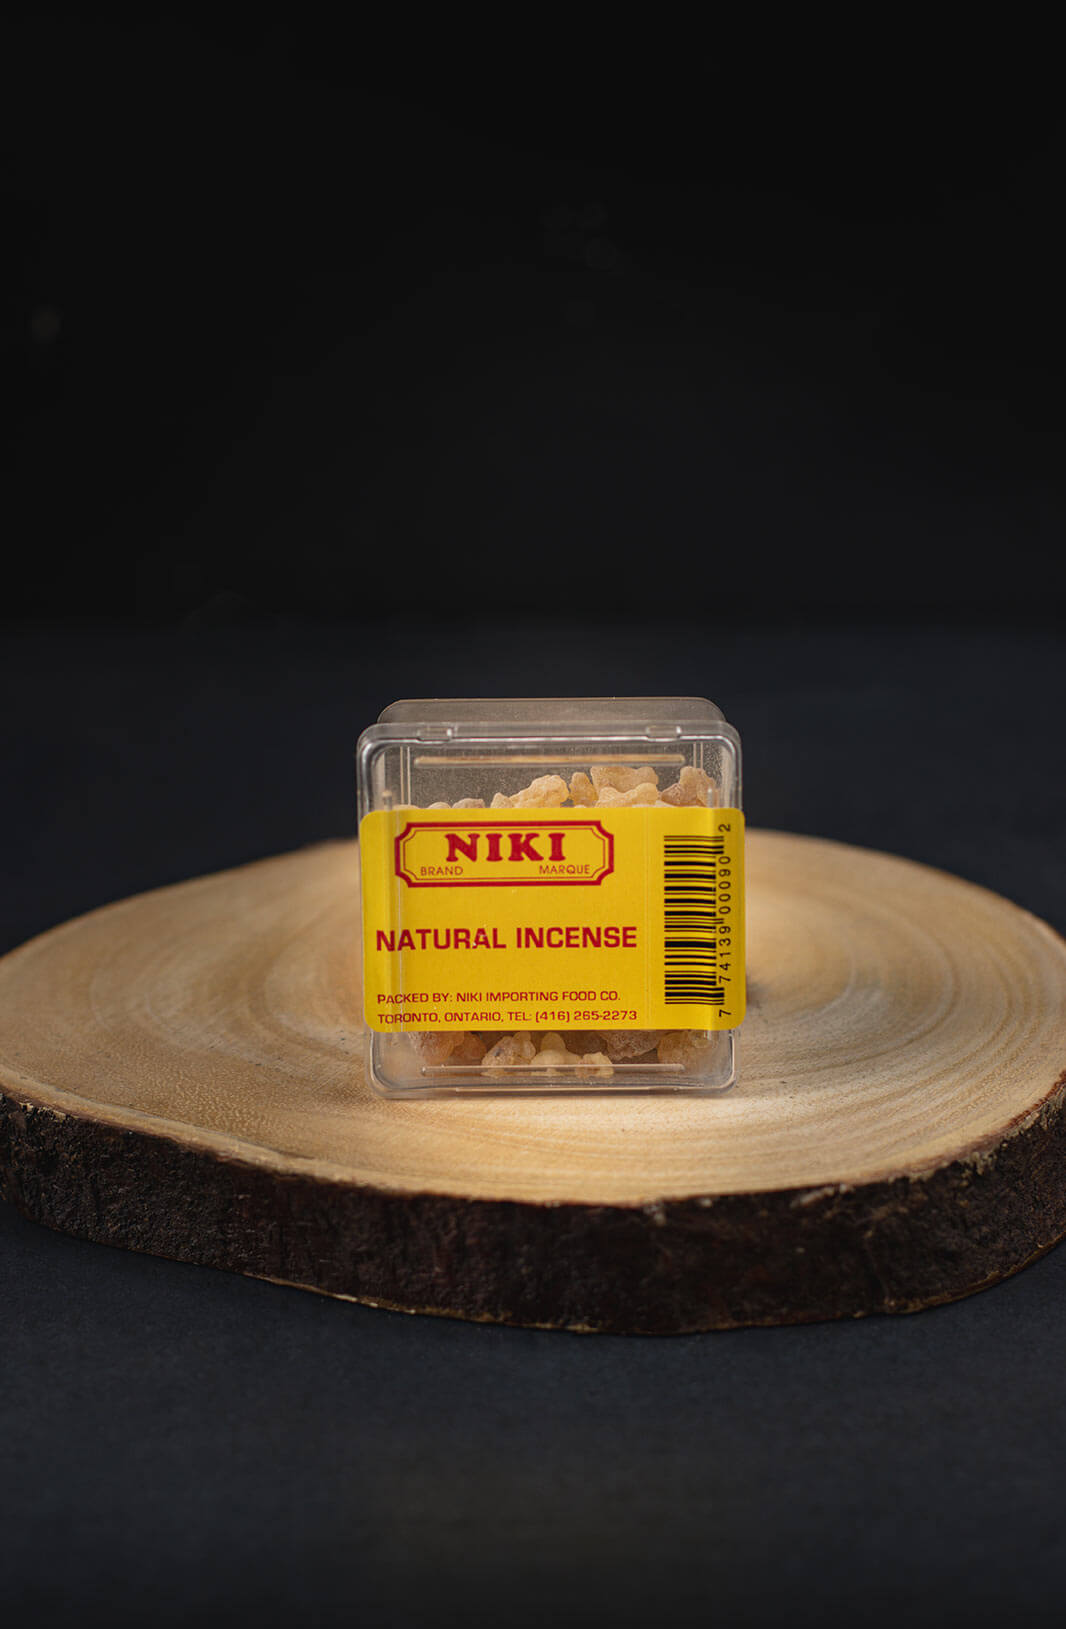 Niki-Natural-Incense-1